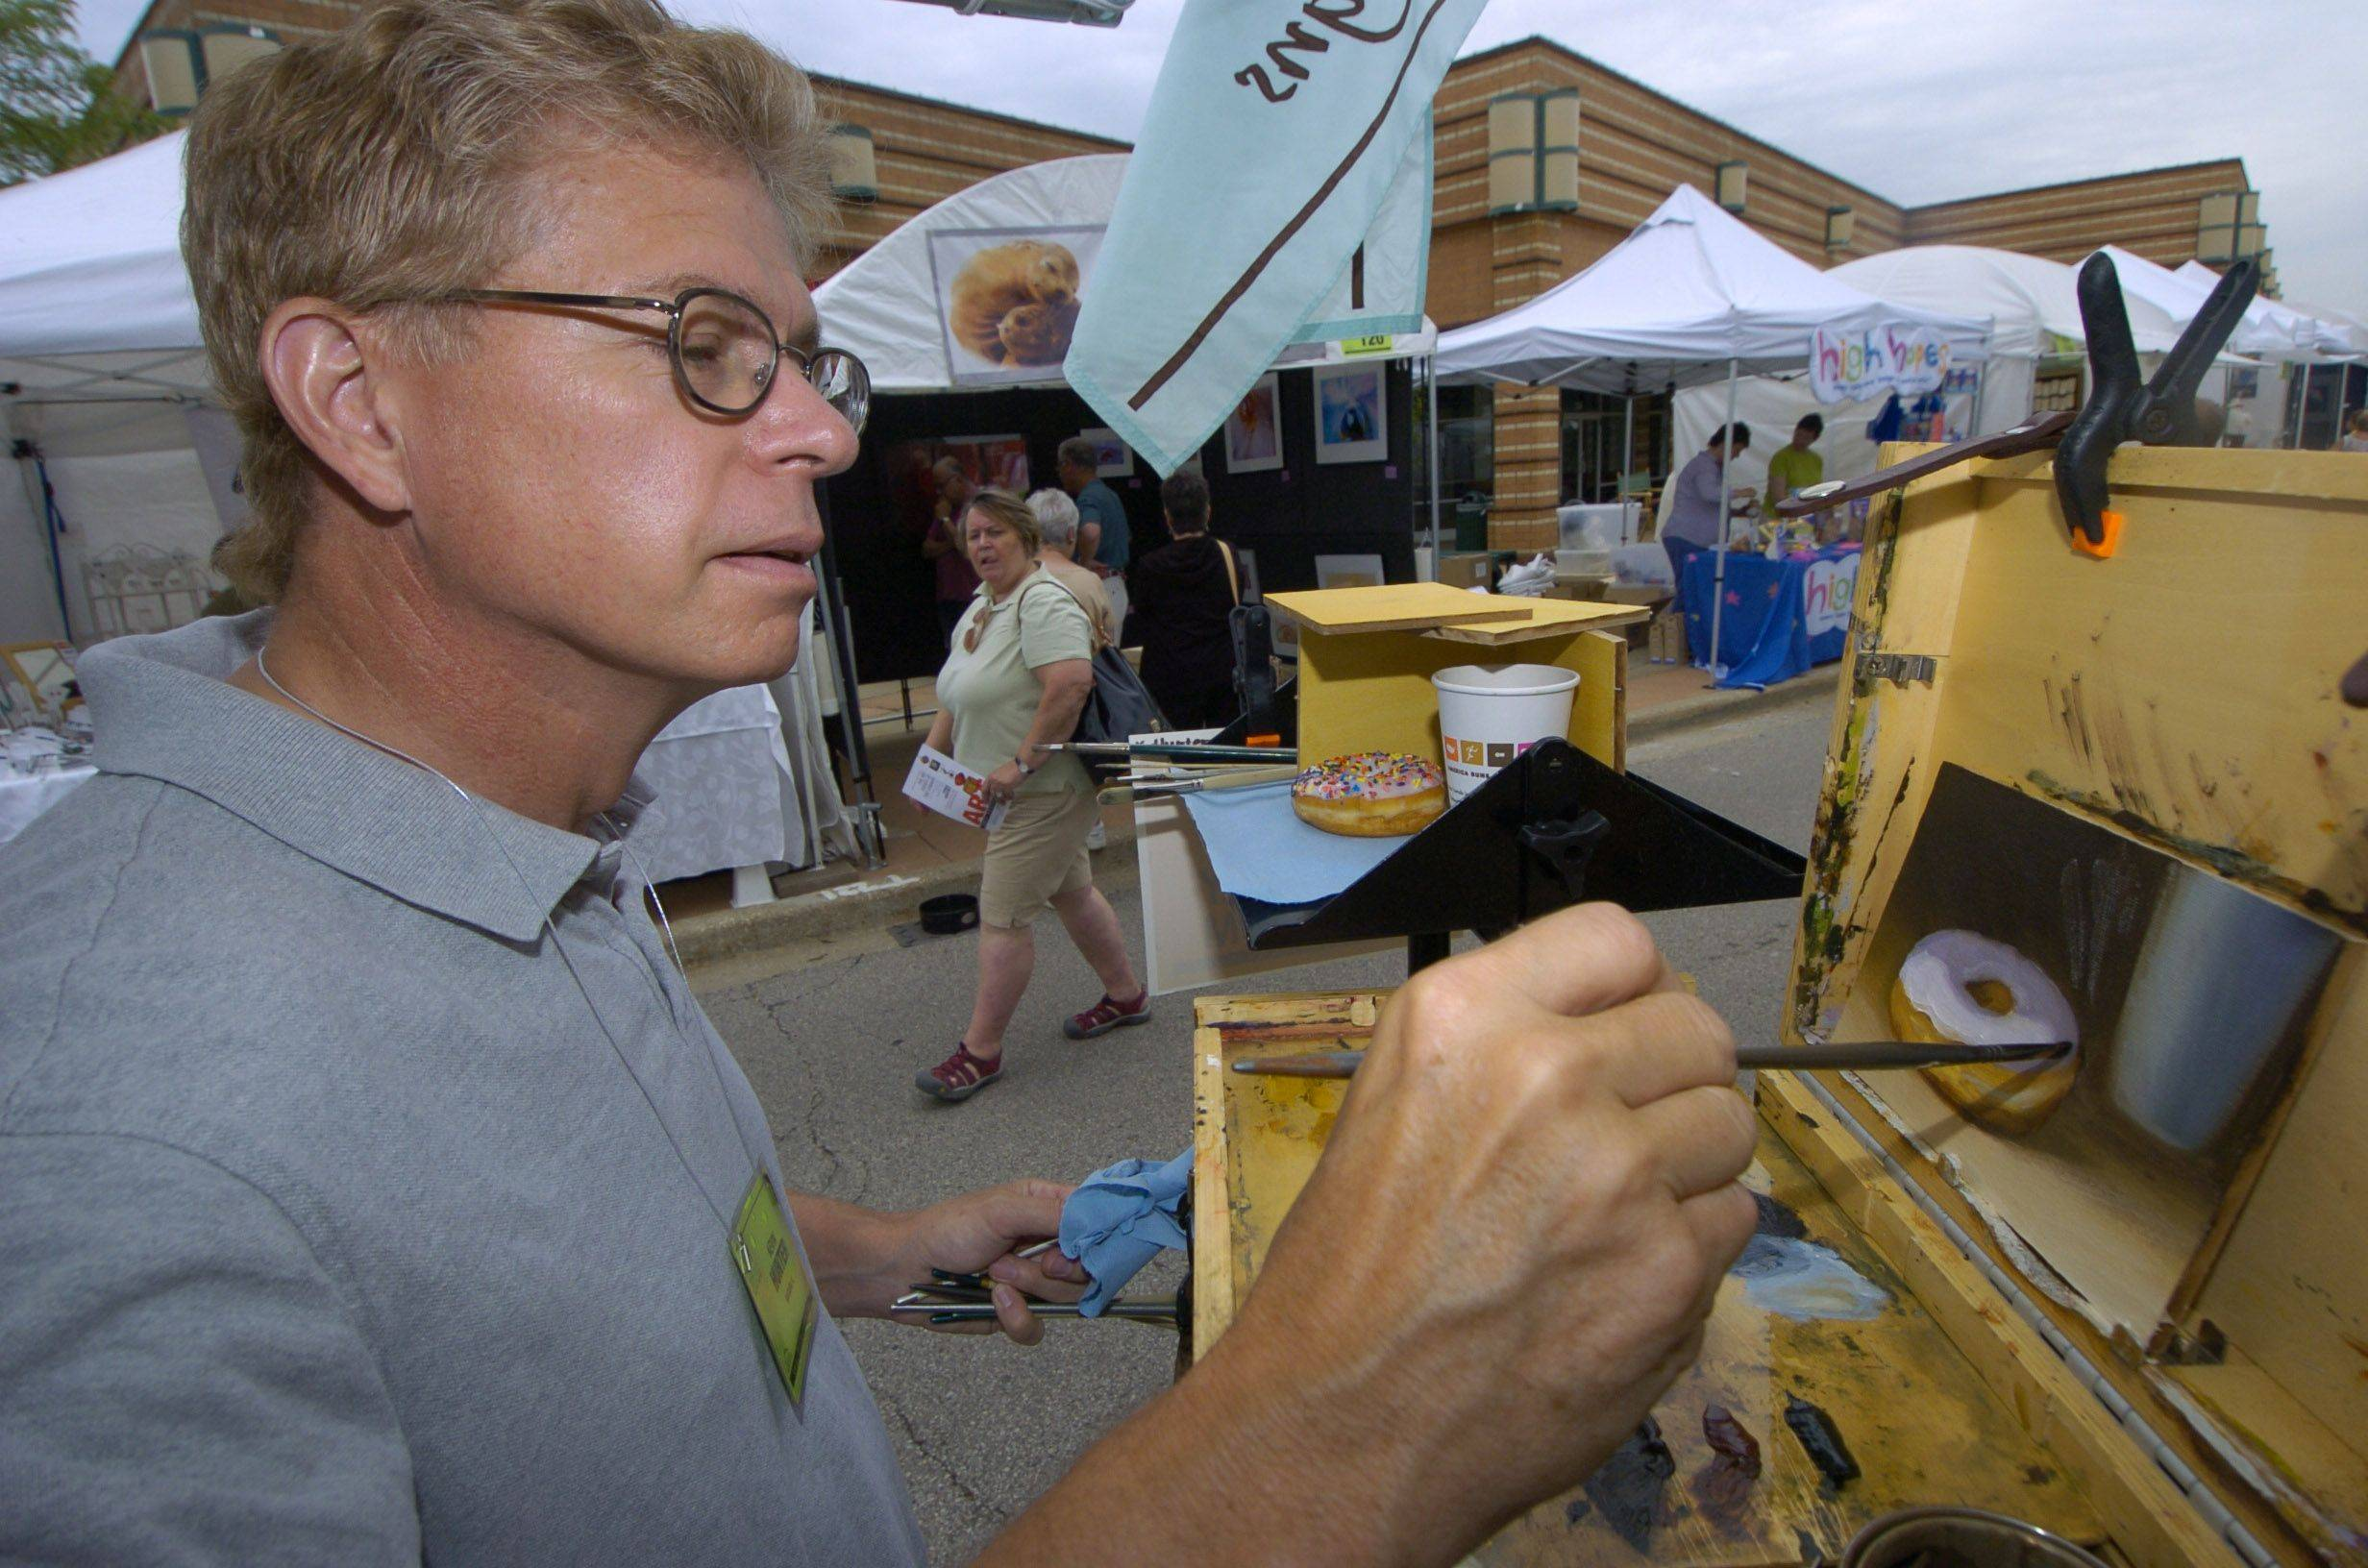 Artist Kevin Hunter of Batavia paints while using a sprinkled doughnut as a model during the Buffalo Grove Invitational Arts Festival Saturday.